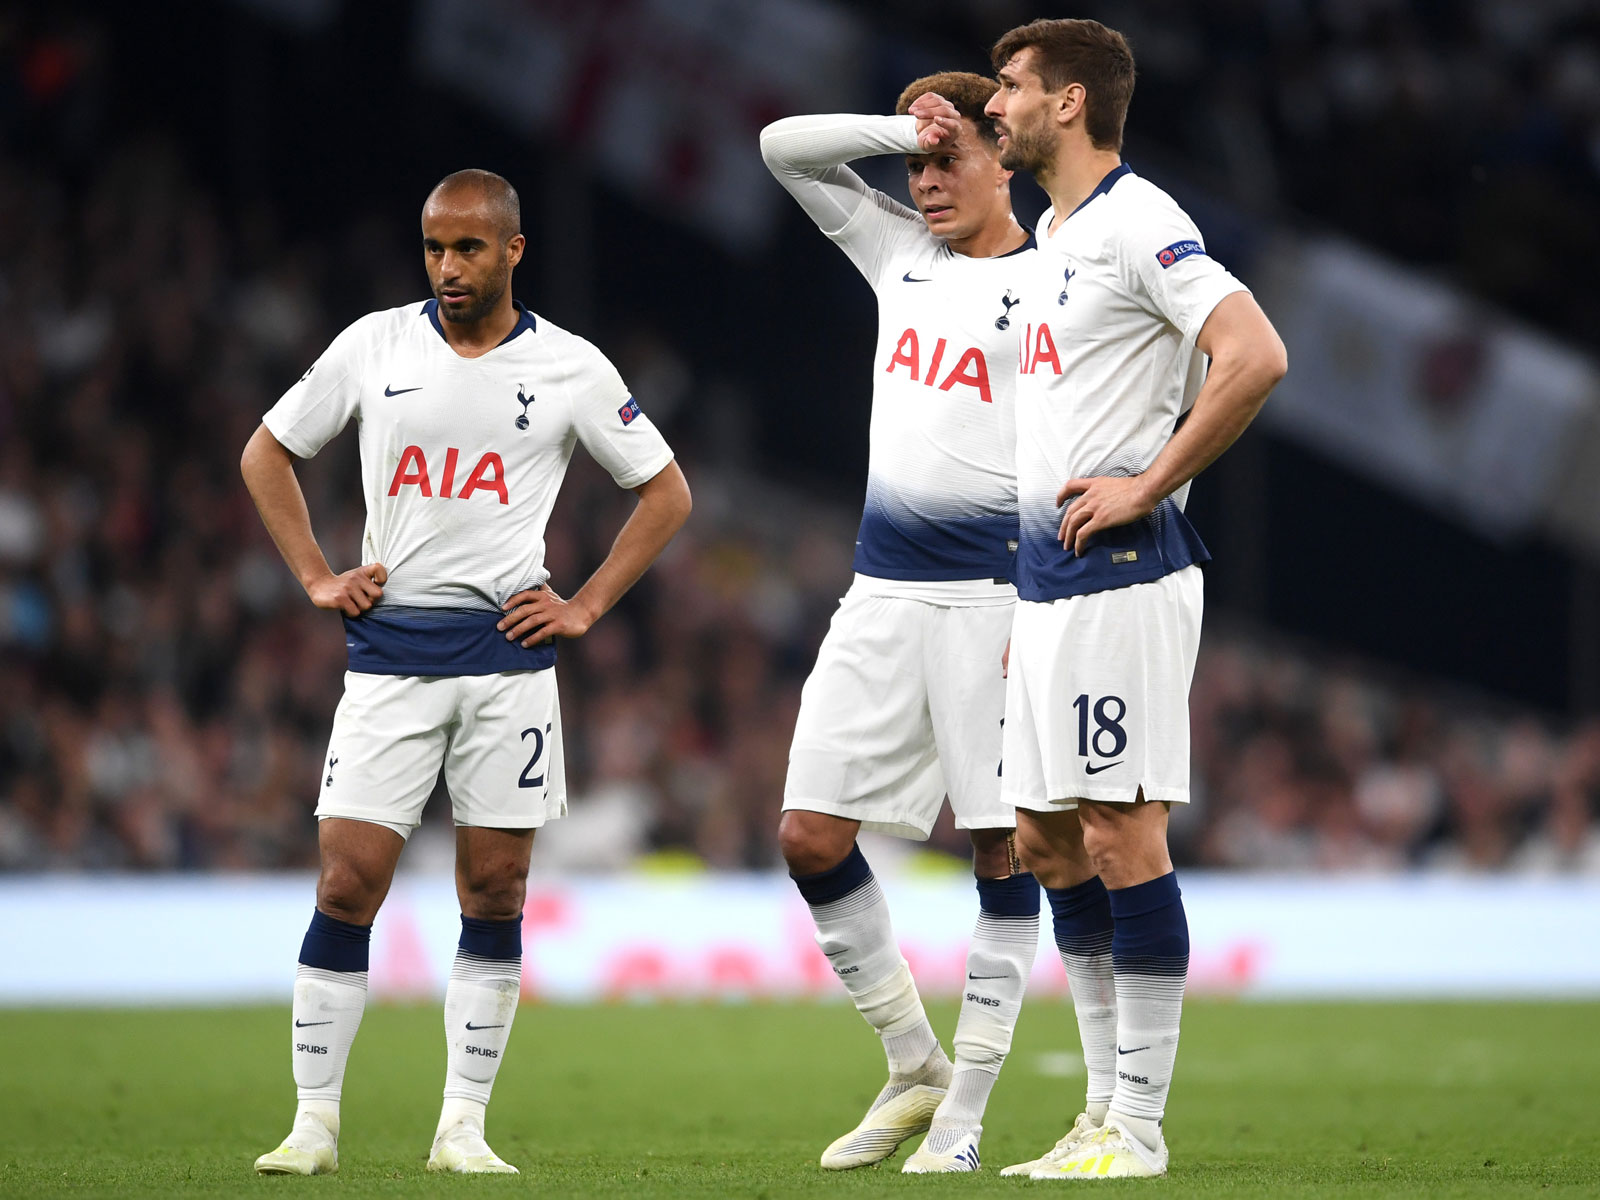 Tottenham is shut out at home vs. Ajax